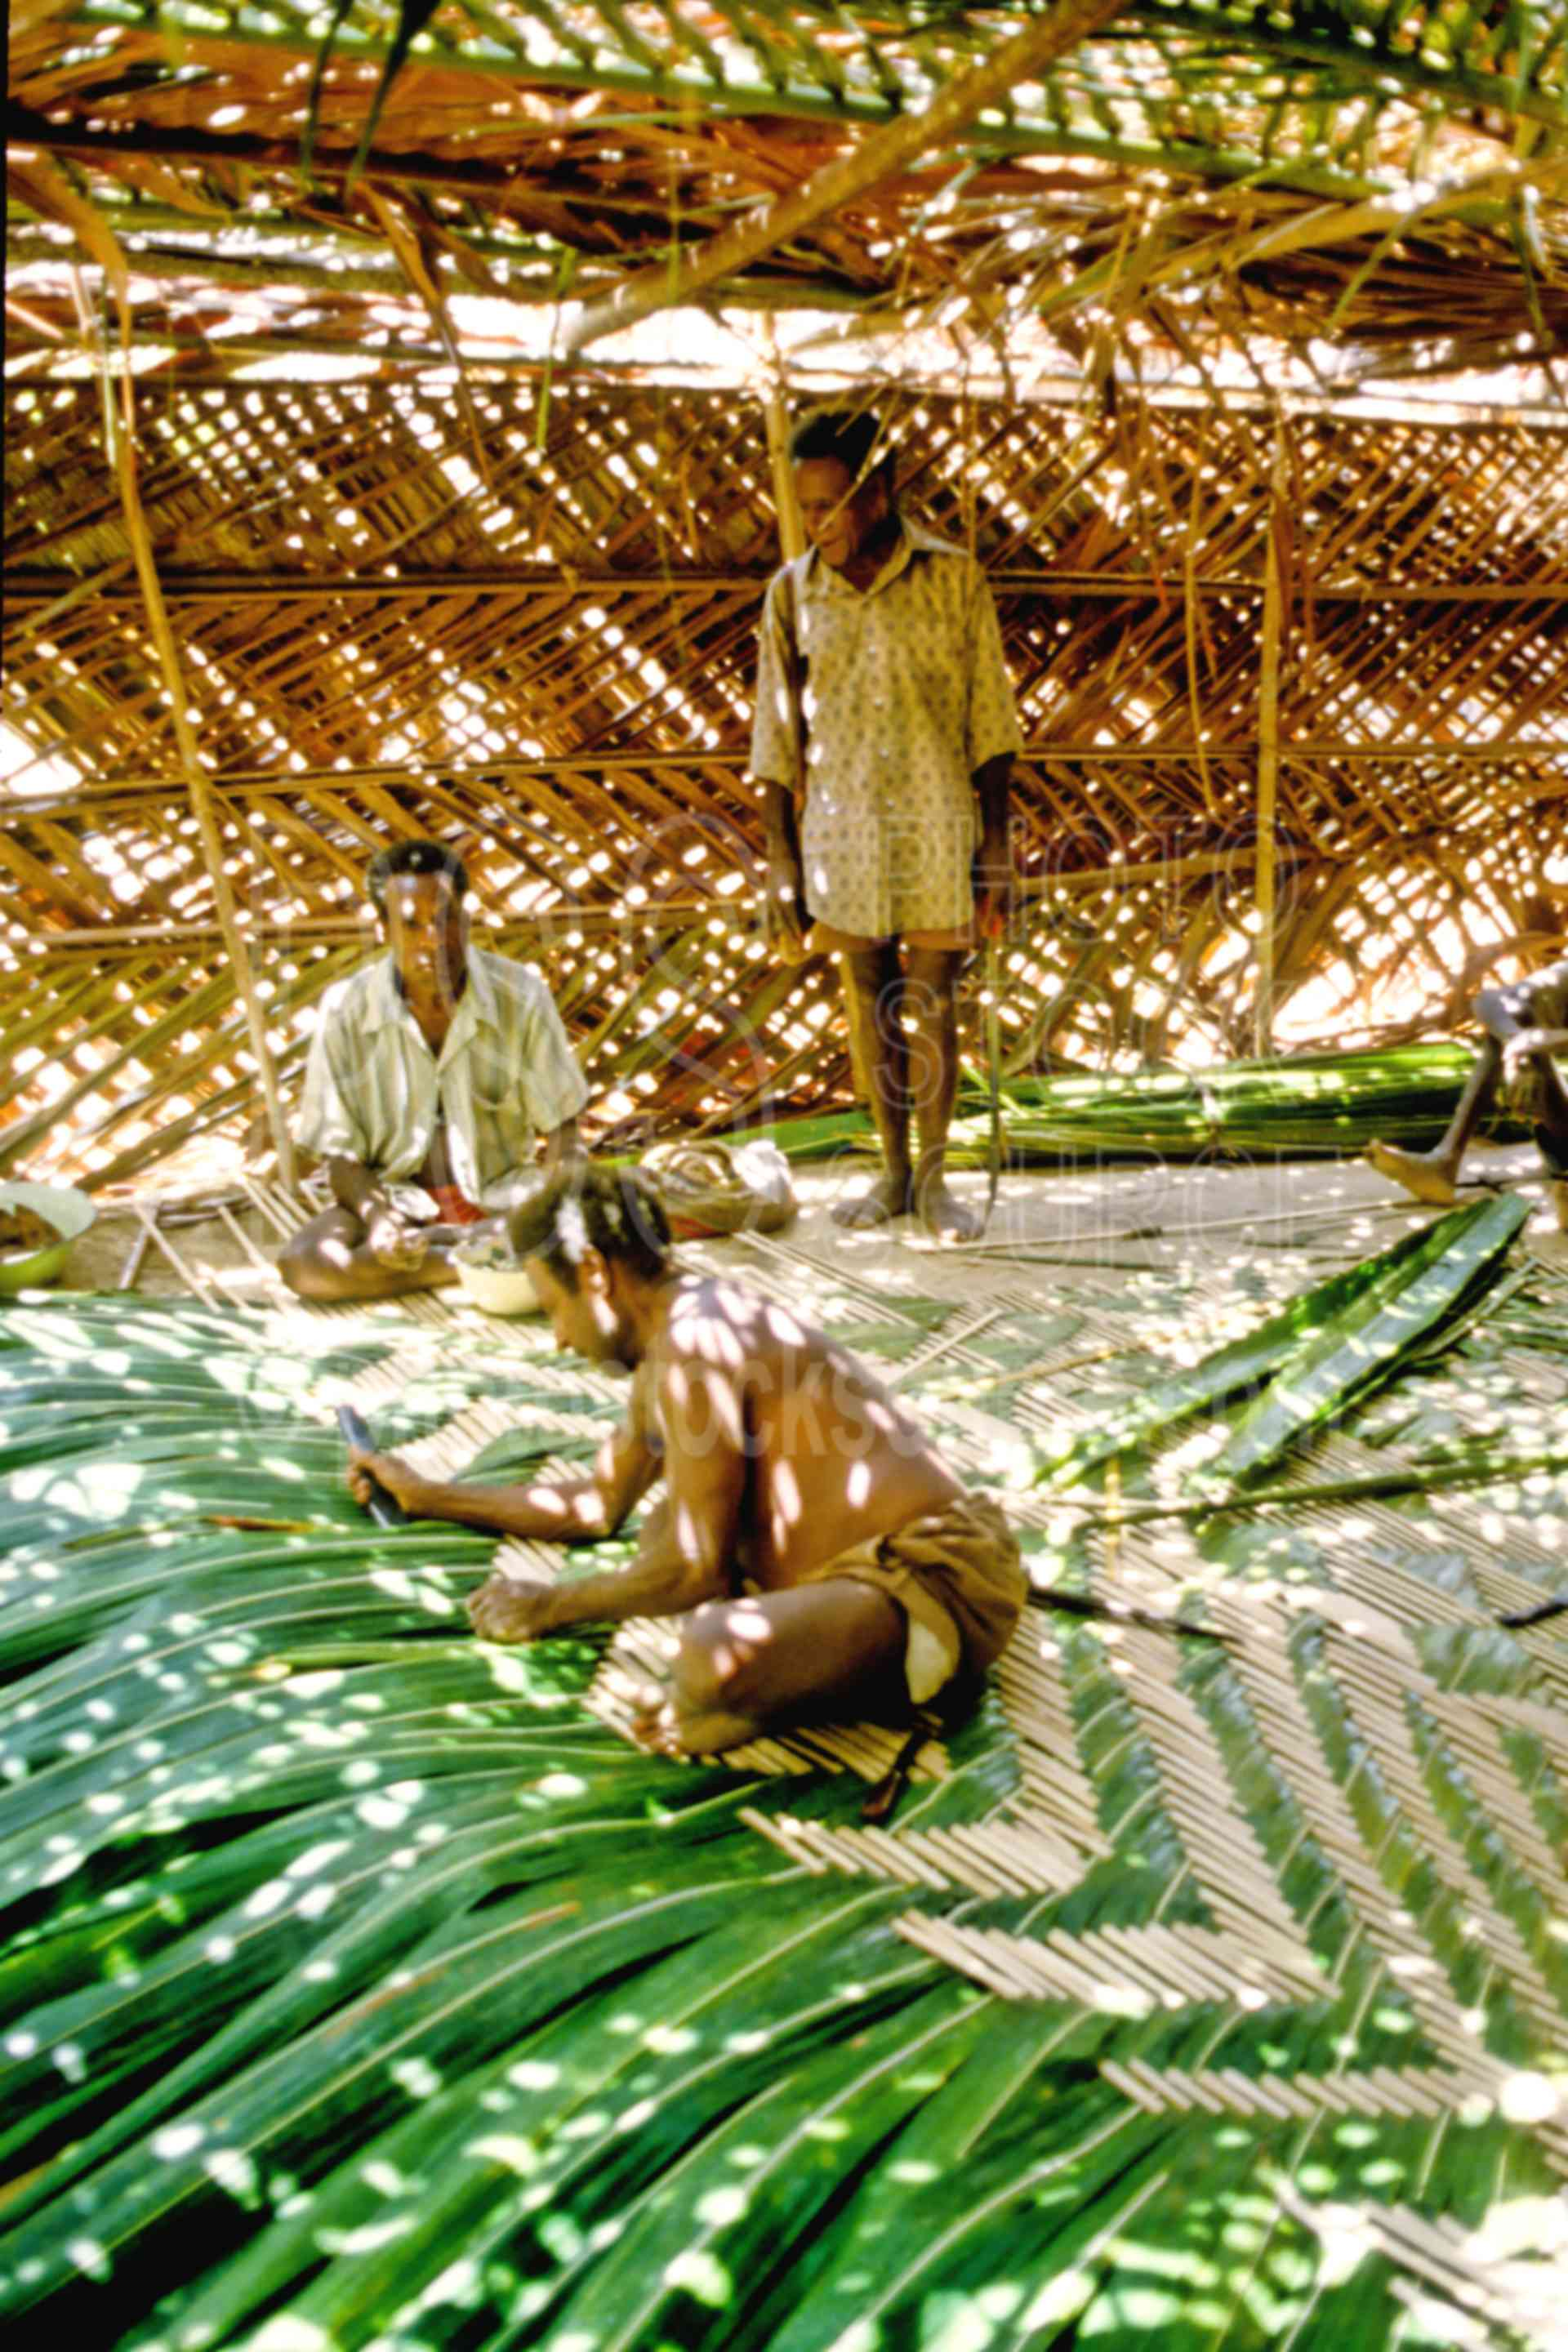 Men weaving palm fronds,leaves,mens,palm,weaving,work,working